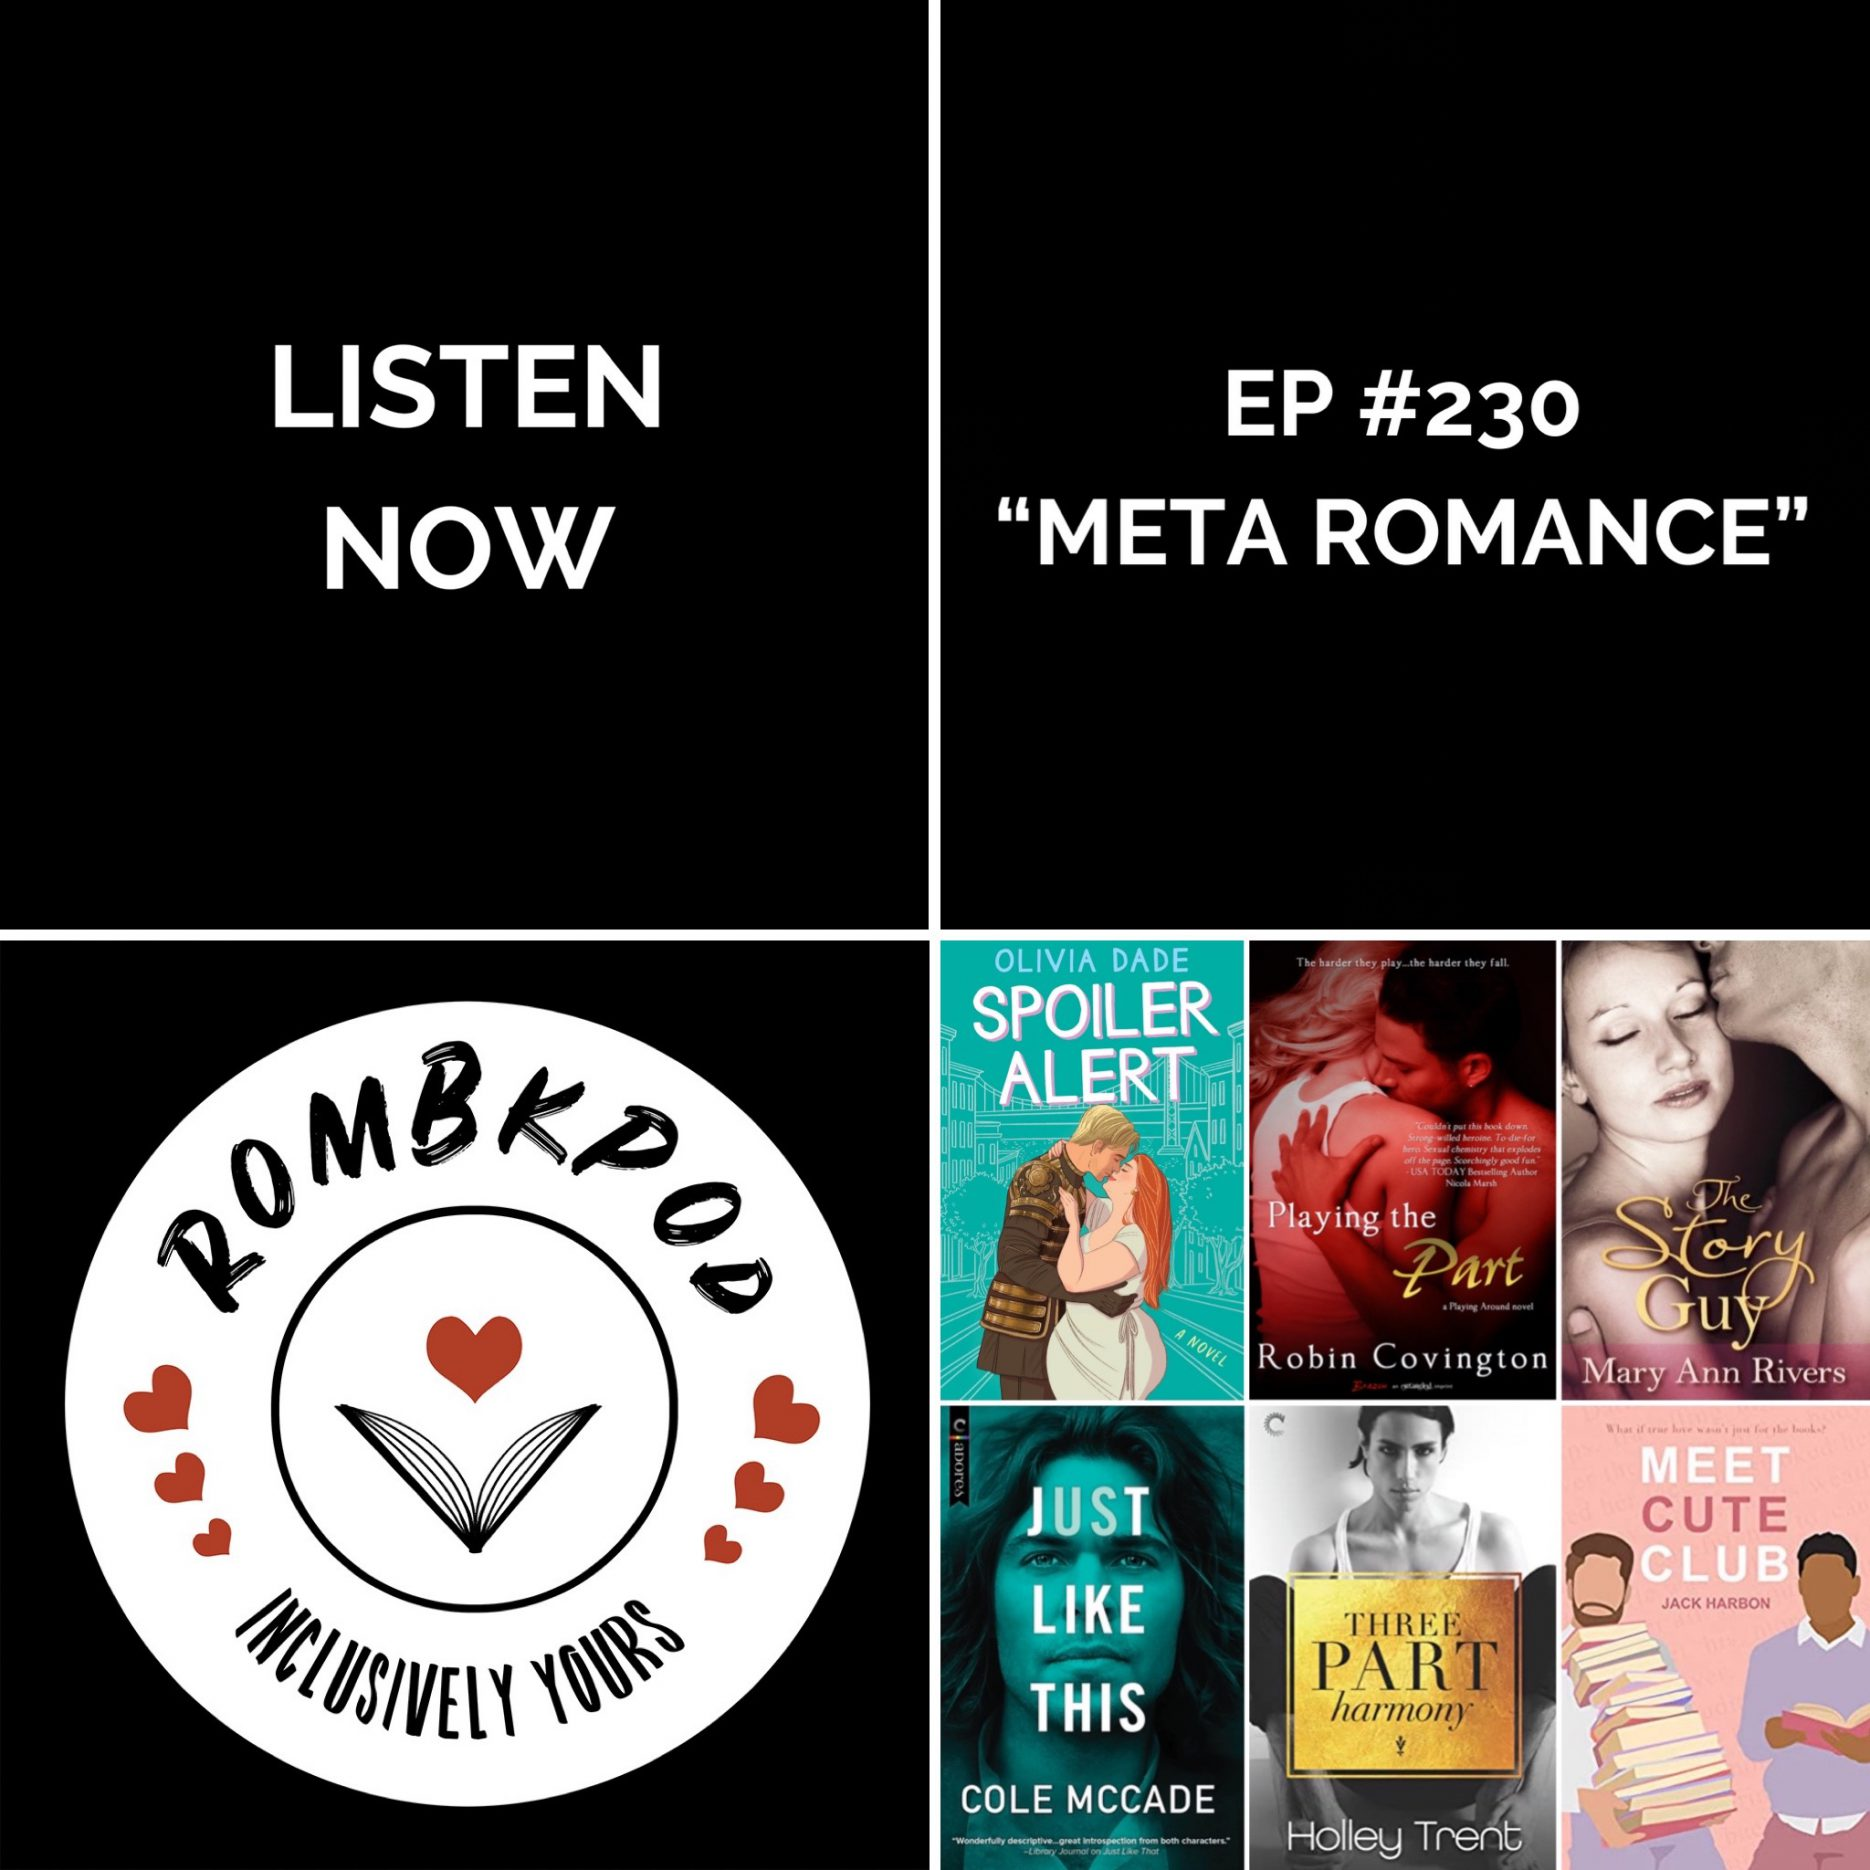 "IMAGE: lower left corner, RomBkPod heart logo; lower right corner, ep #230 book cover collage; IMAGE TEXT: Listen Now, ep #230 ""Meta Romance"""